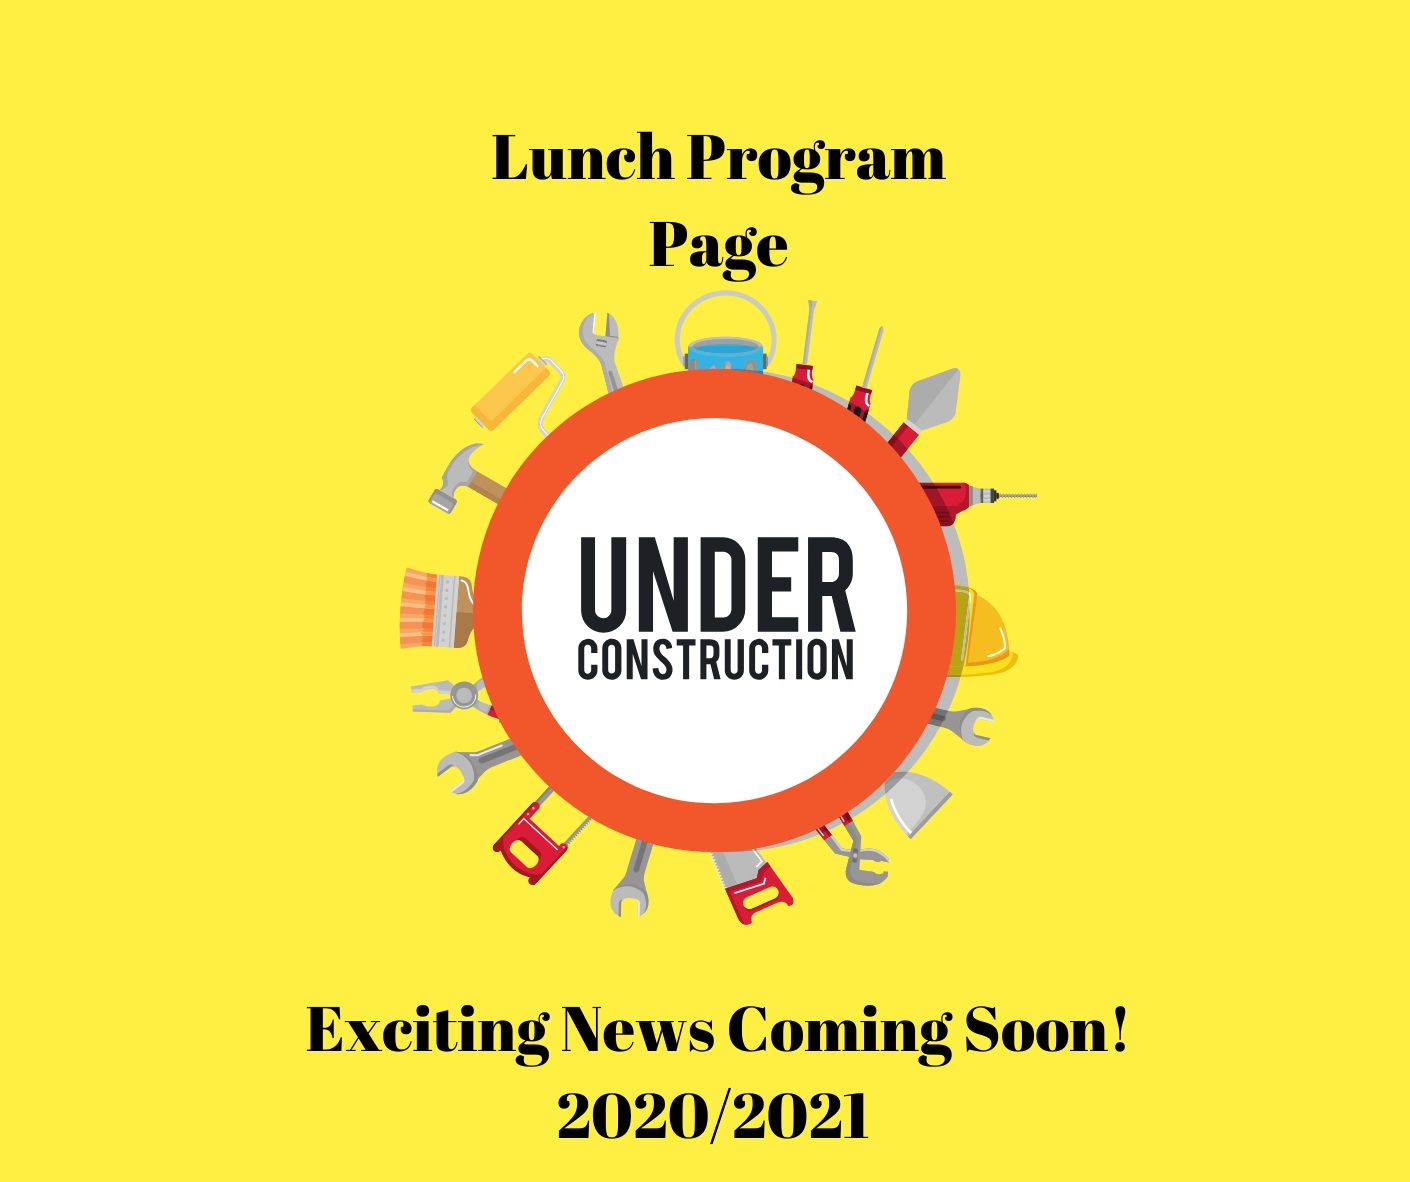 Lunch Program Page